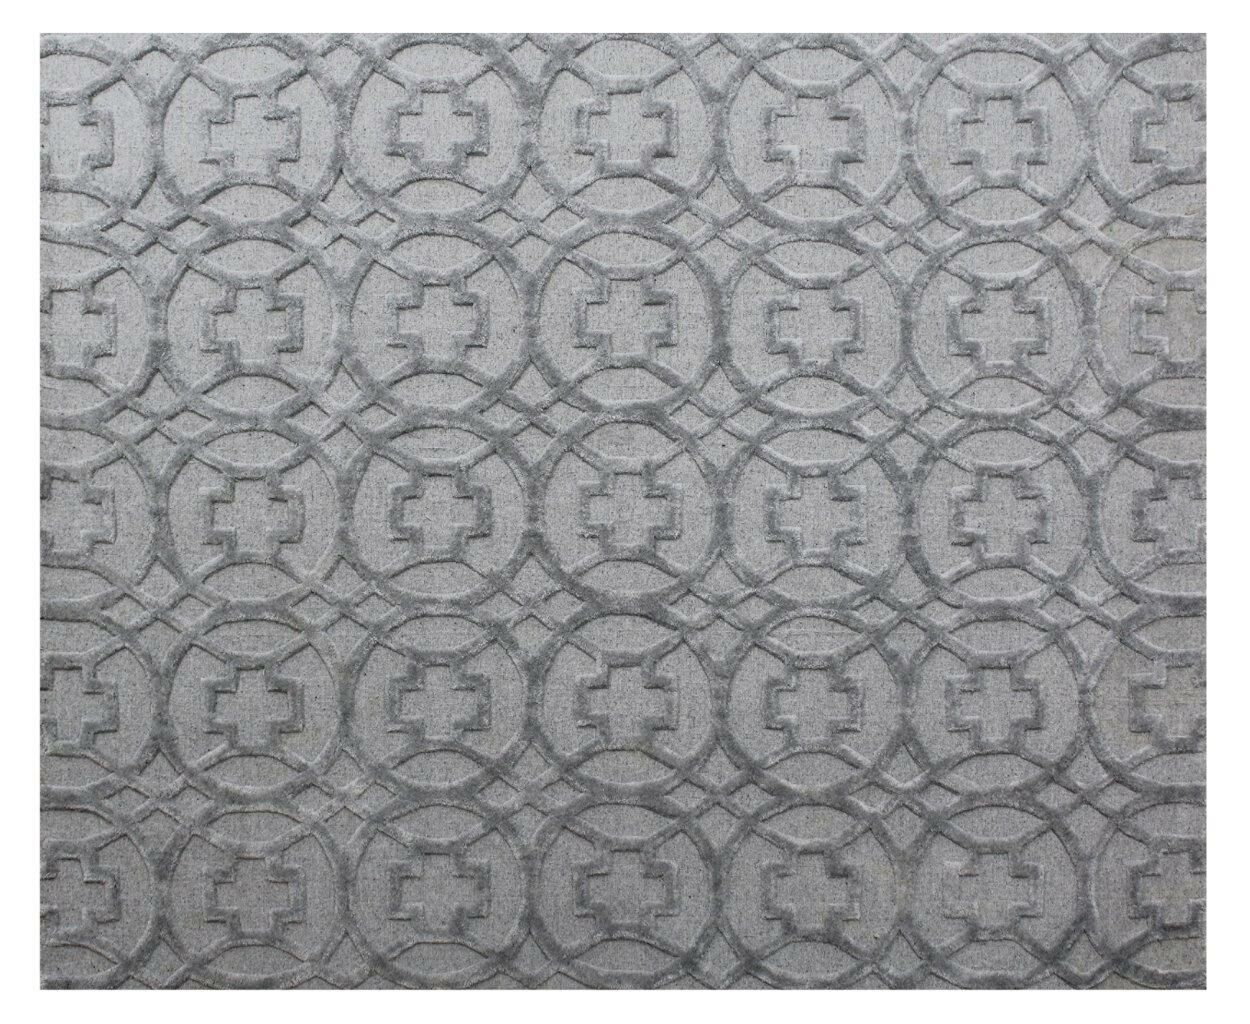 Windsor Hand-Woven Wool Gray Area Rug Rug Size: Rectangle 10' x 14'